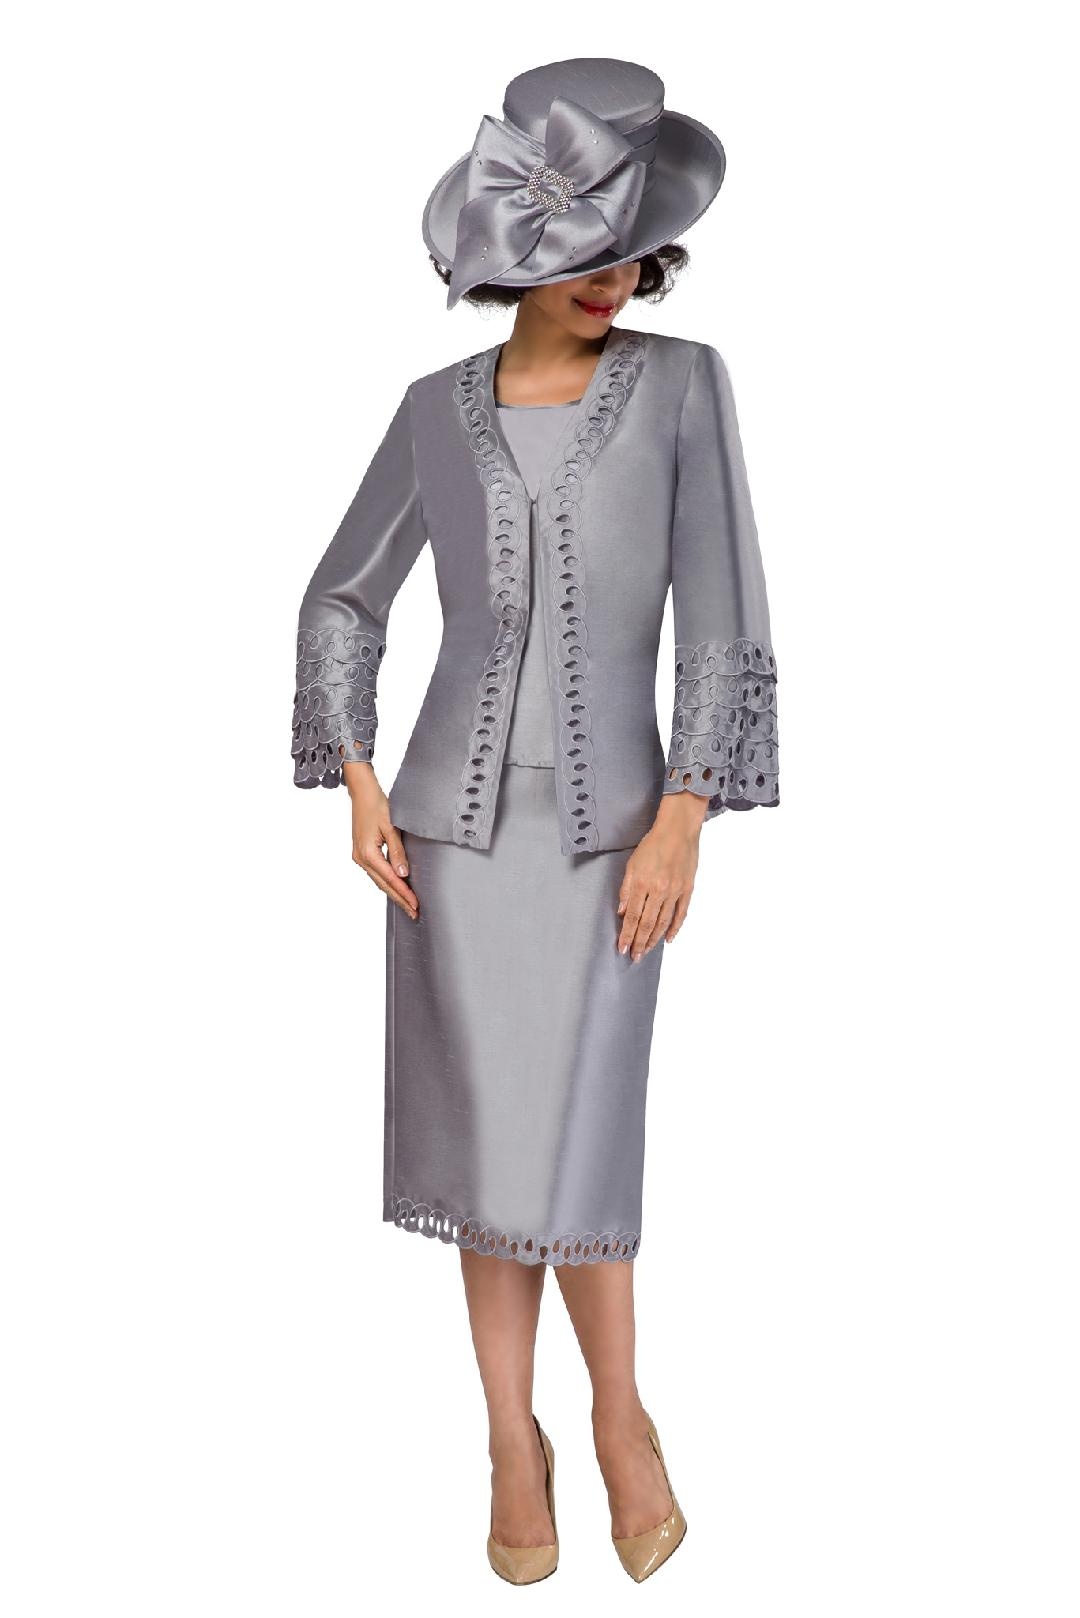 Giovanna Suit G1106C-Silver - Church Suits For Less